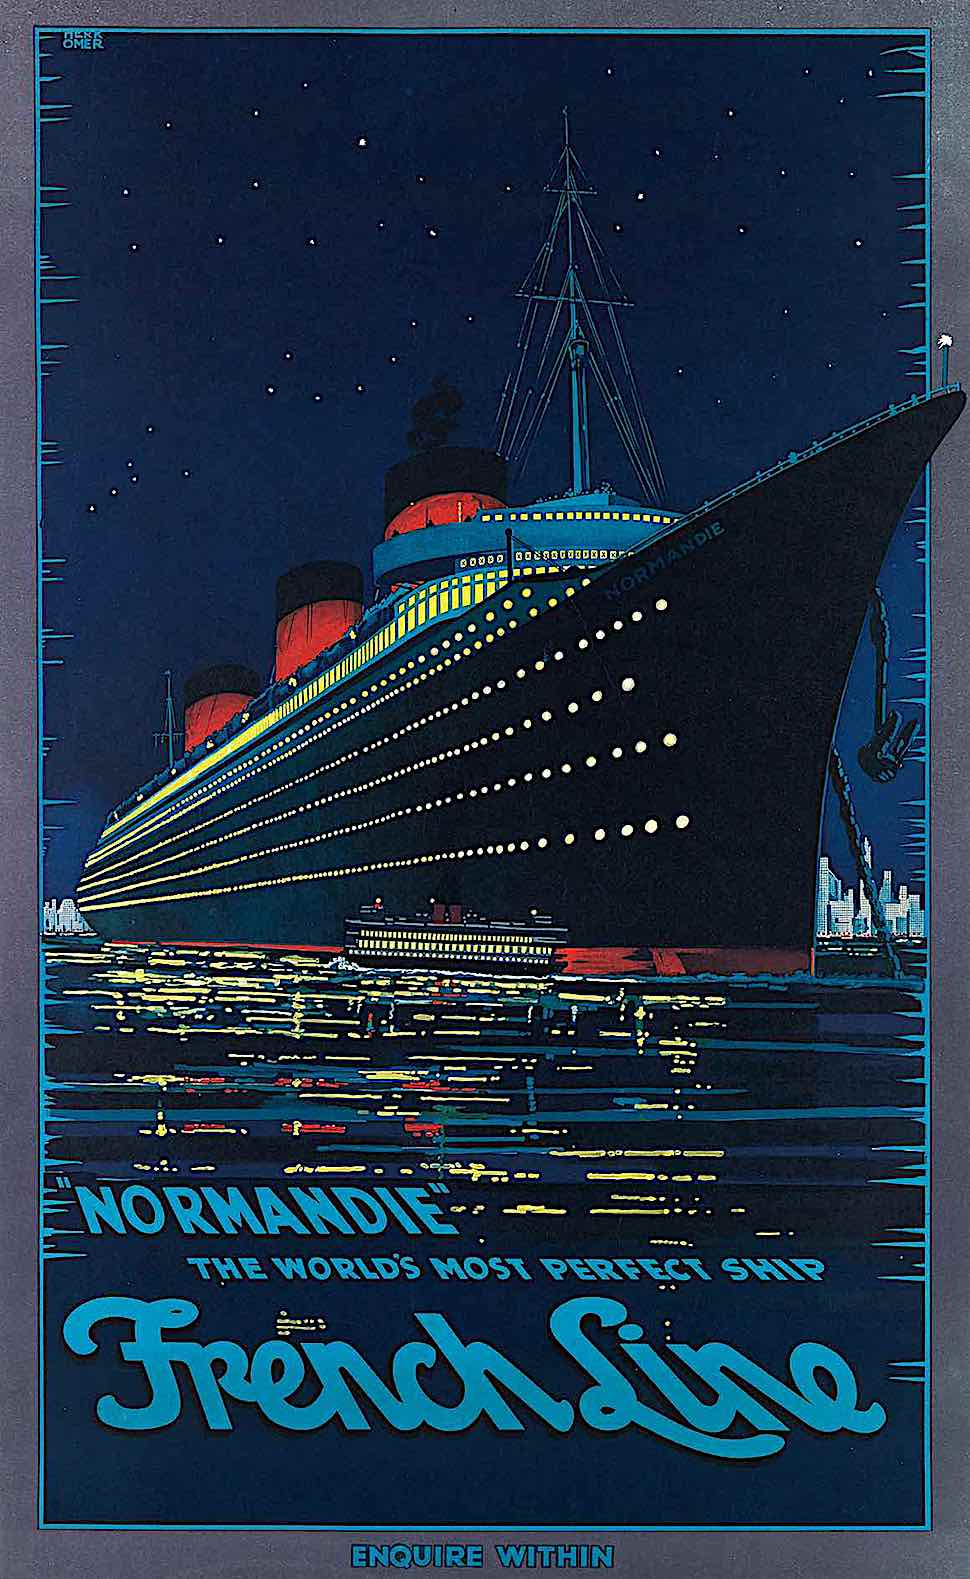 a Hubert Herkomer red yellow blue poster illustration 1939 for French Line Cruise Ship Normandie